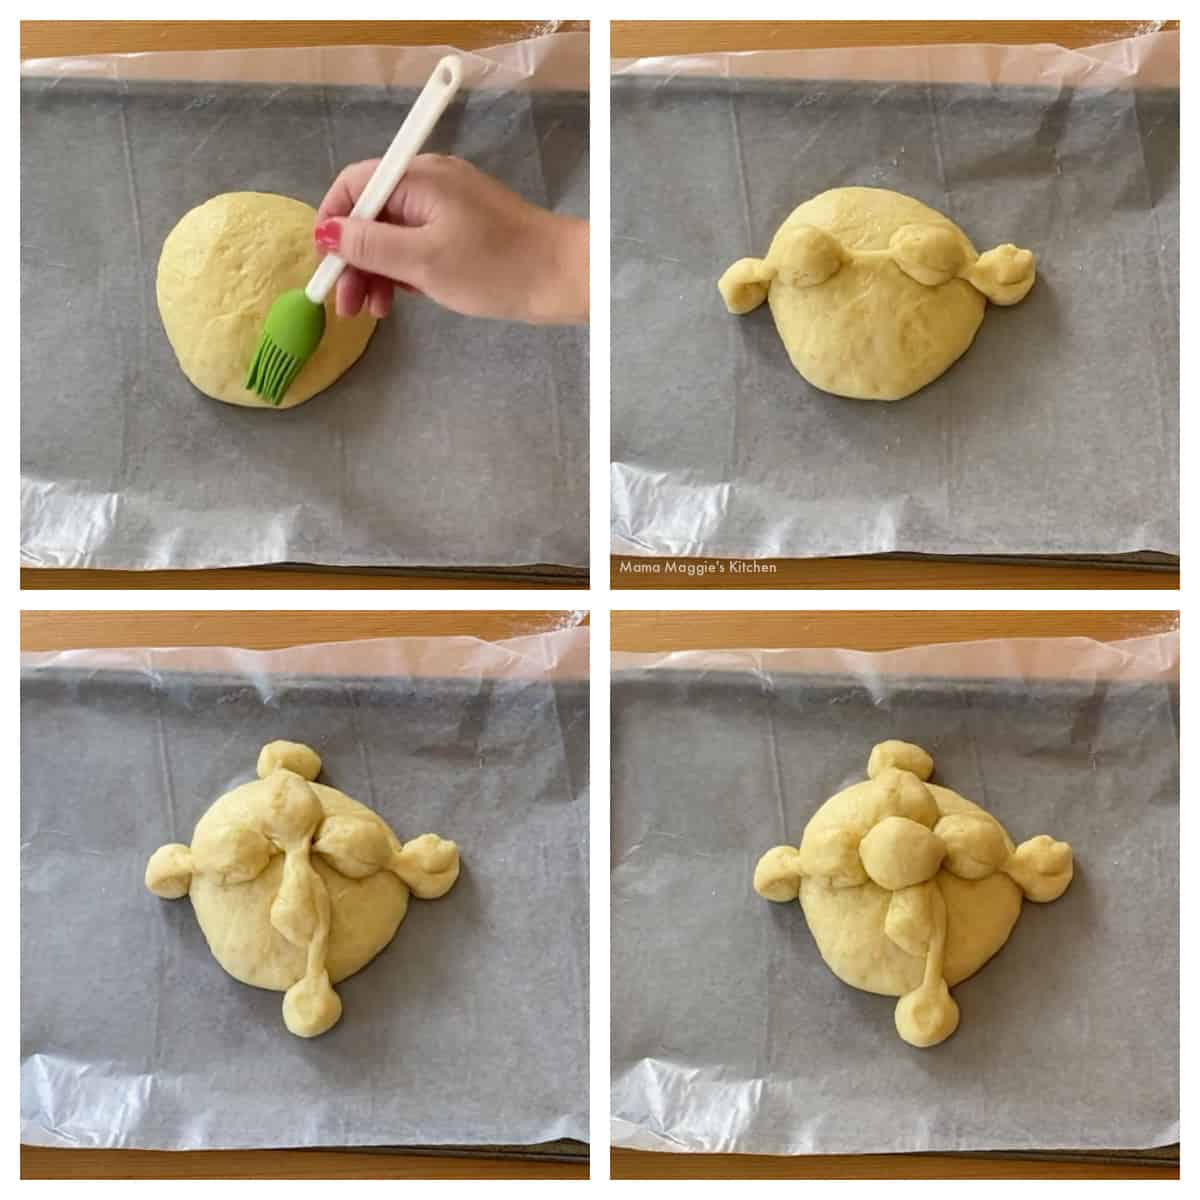 A collage showing how to add the dough bones and heads to the pan de muerto.